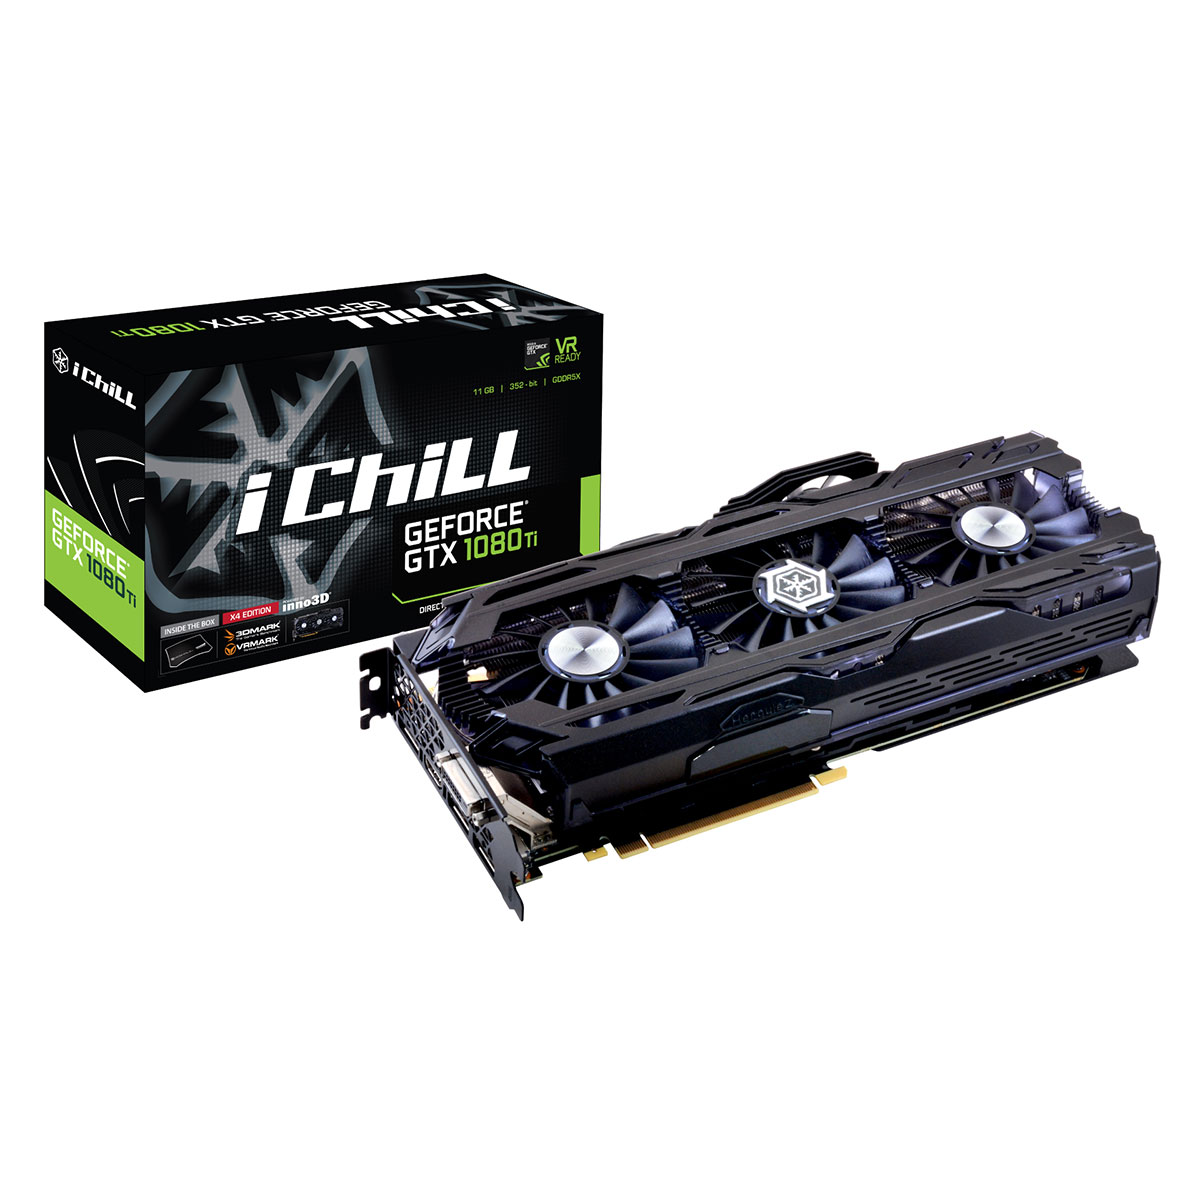 inno3d ichill geforce gtx 1080 ti x4 ultra carte graphique inno 3d sur. Black Bedroom Furniture Sets. Home Design Ideas